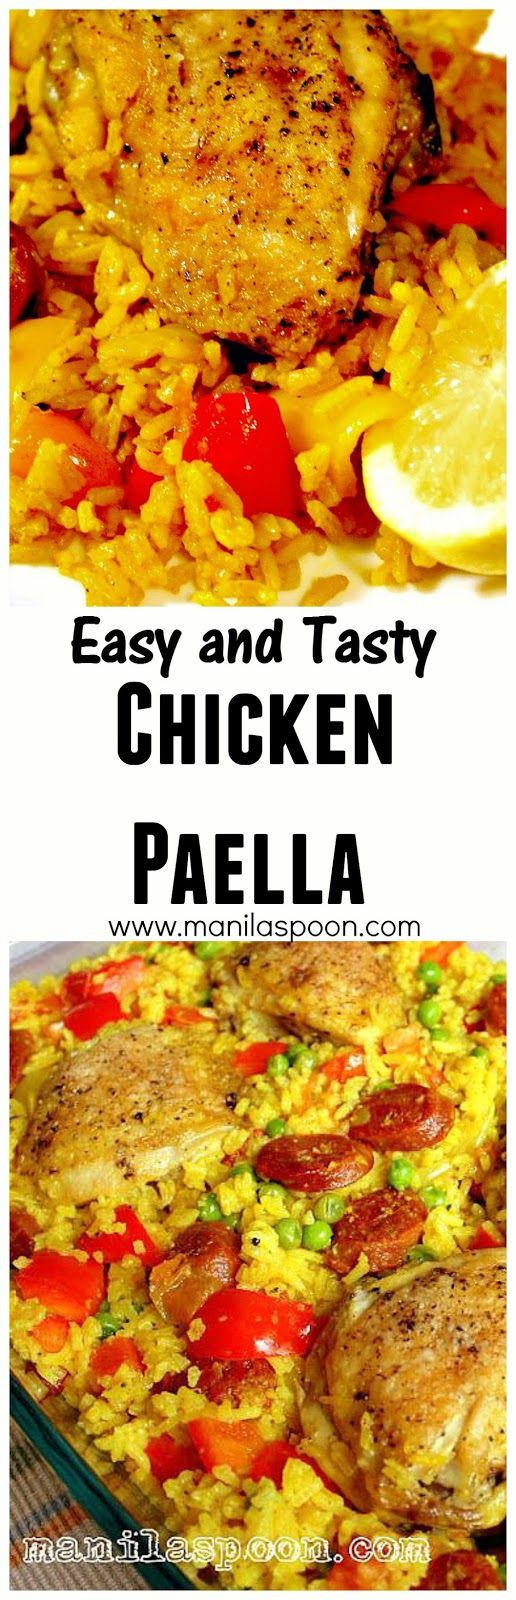 Everyone I have made this for always love this! An easy and simple Chicken Paella that's a delight to the eye and a joy to the palate.